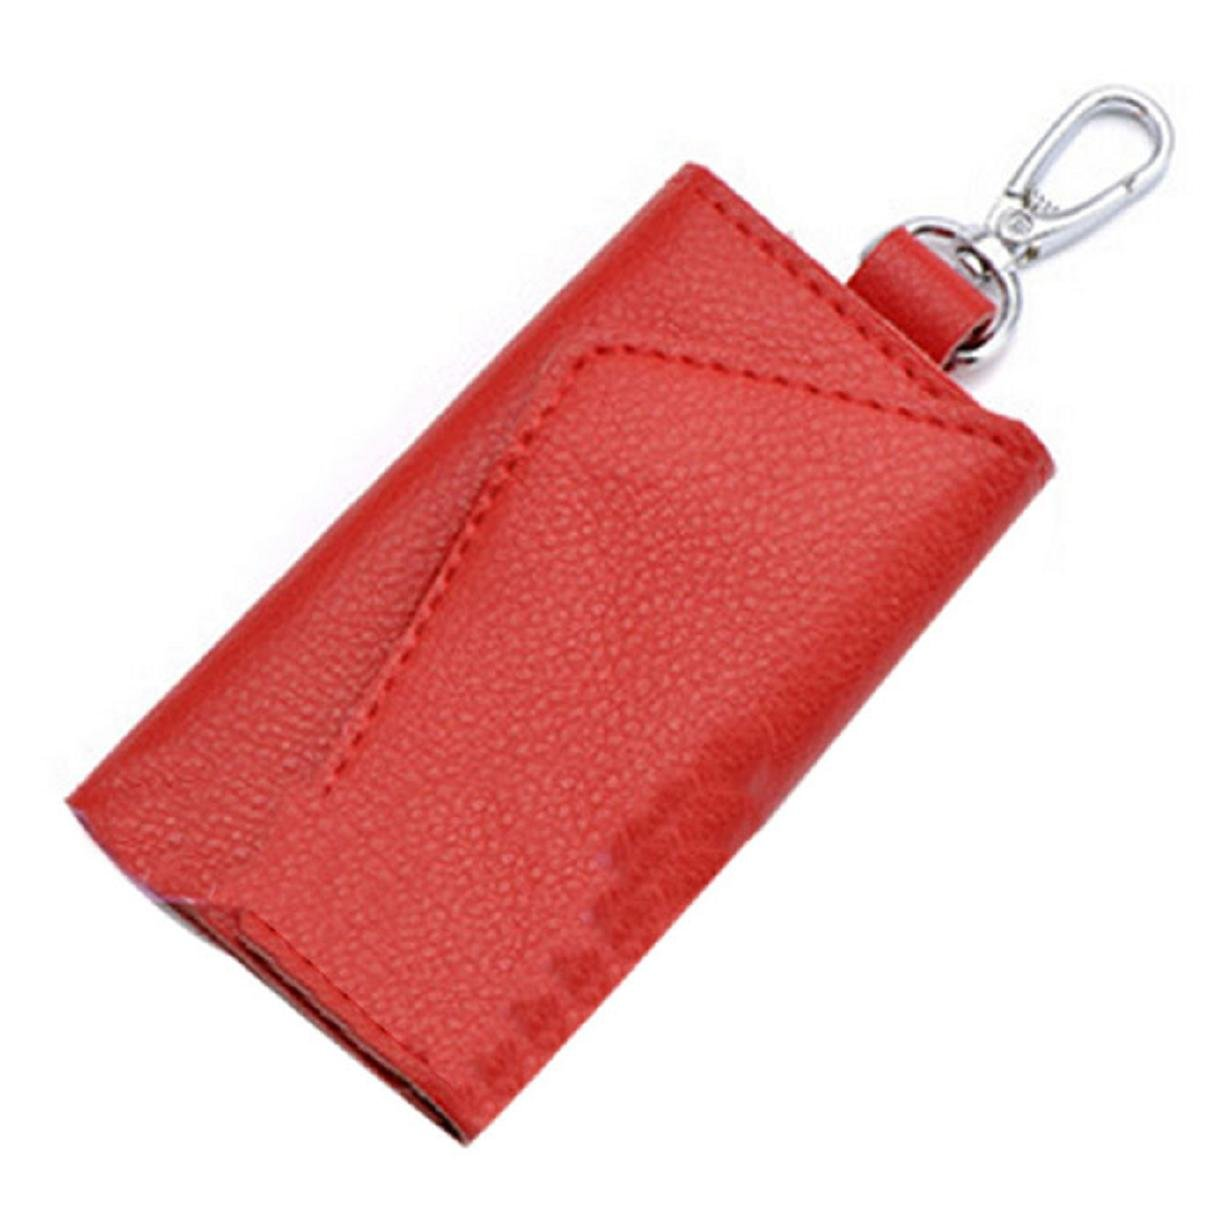 ABC® New Fashion Leather Key Wallets Creative Card Package Multi-function Key Bill Purse